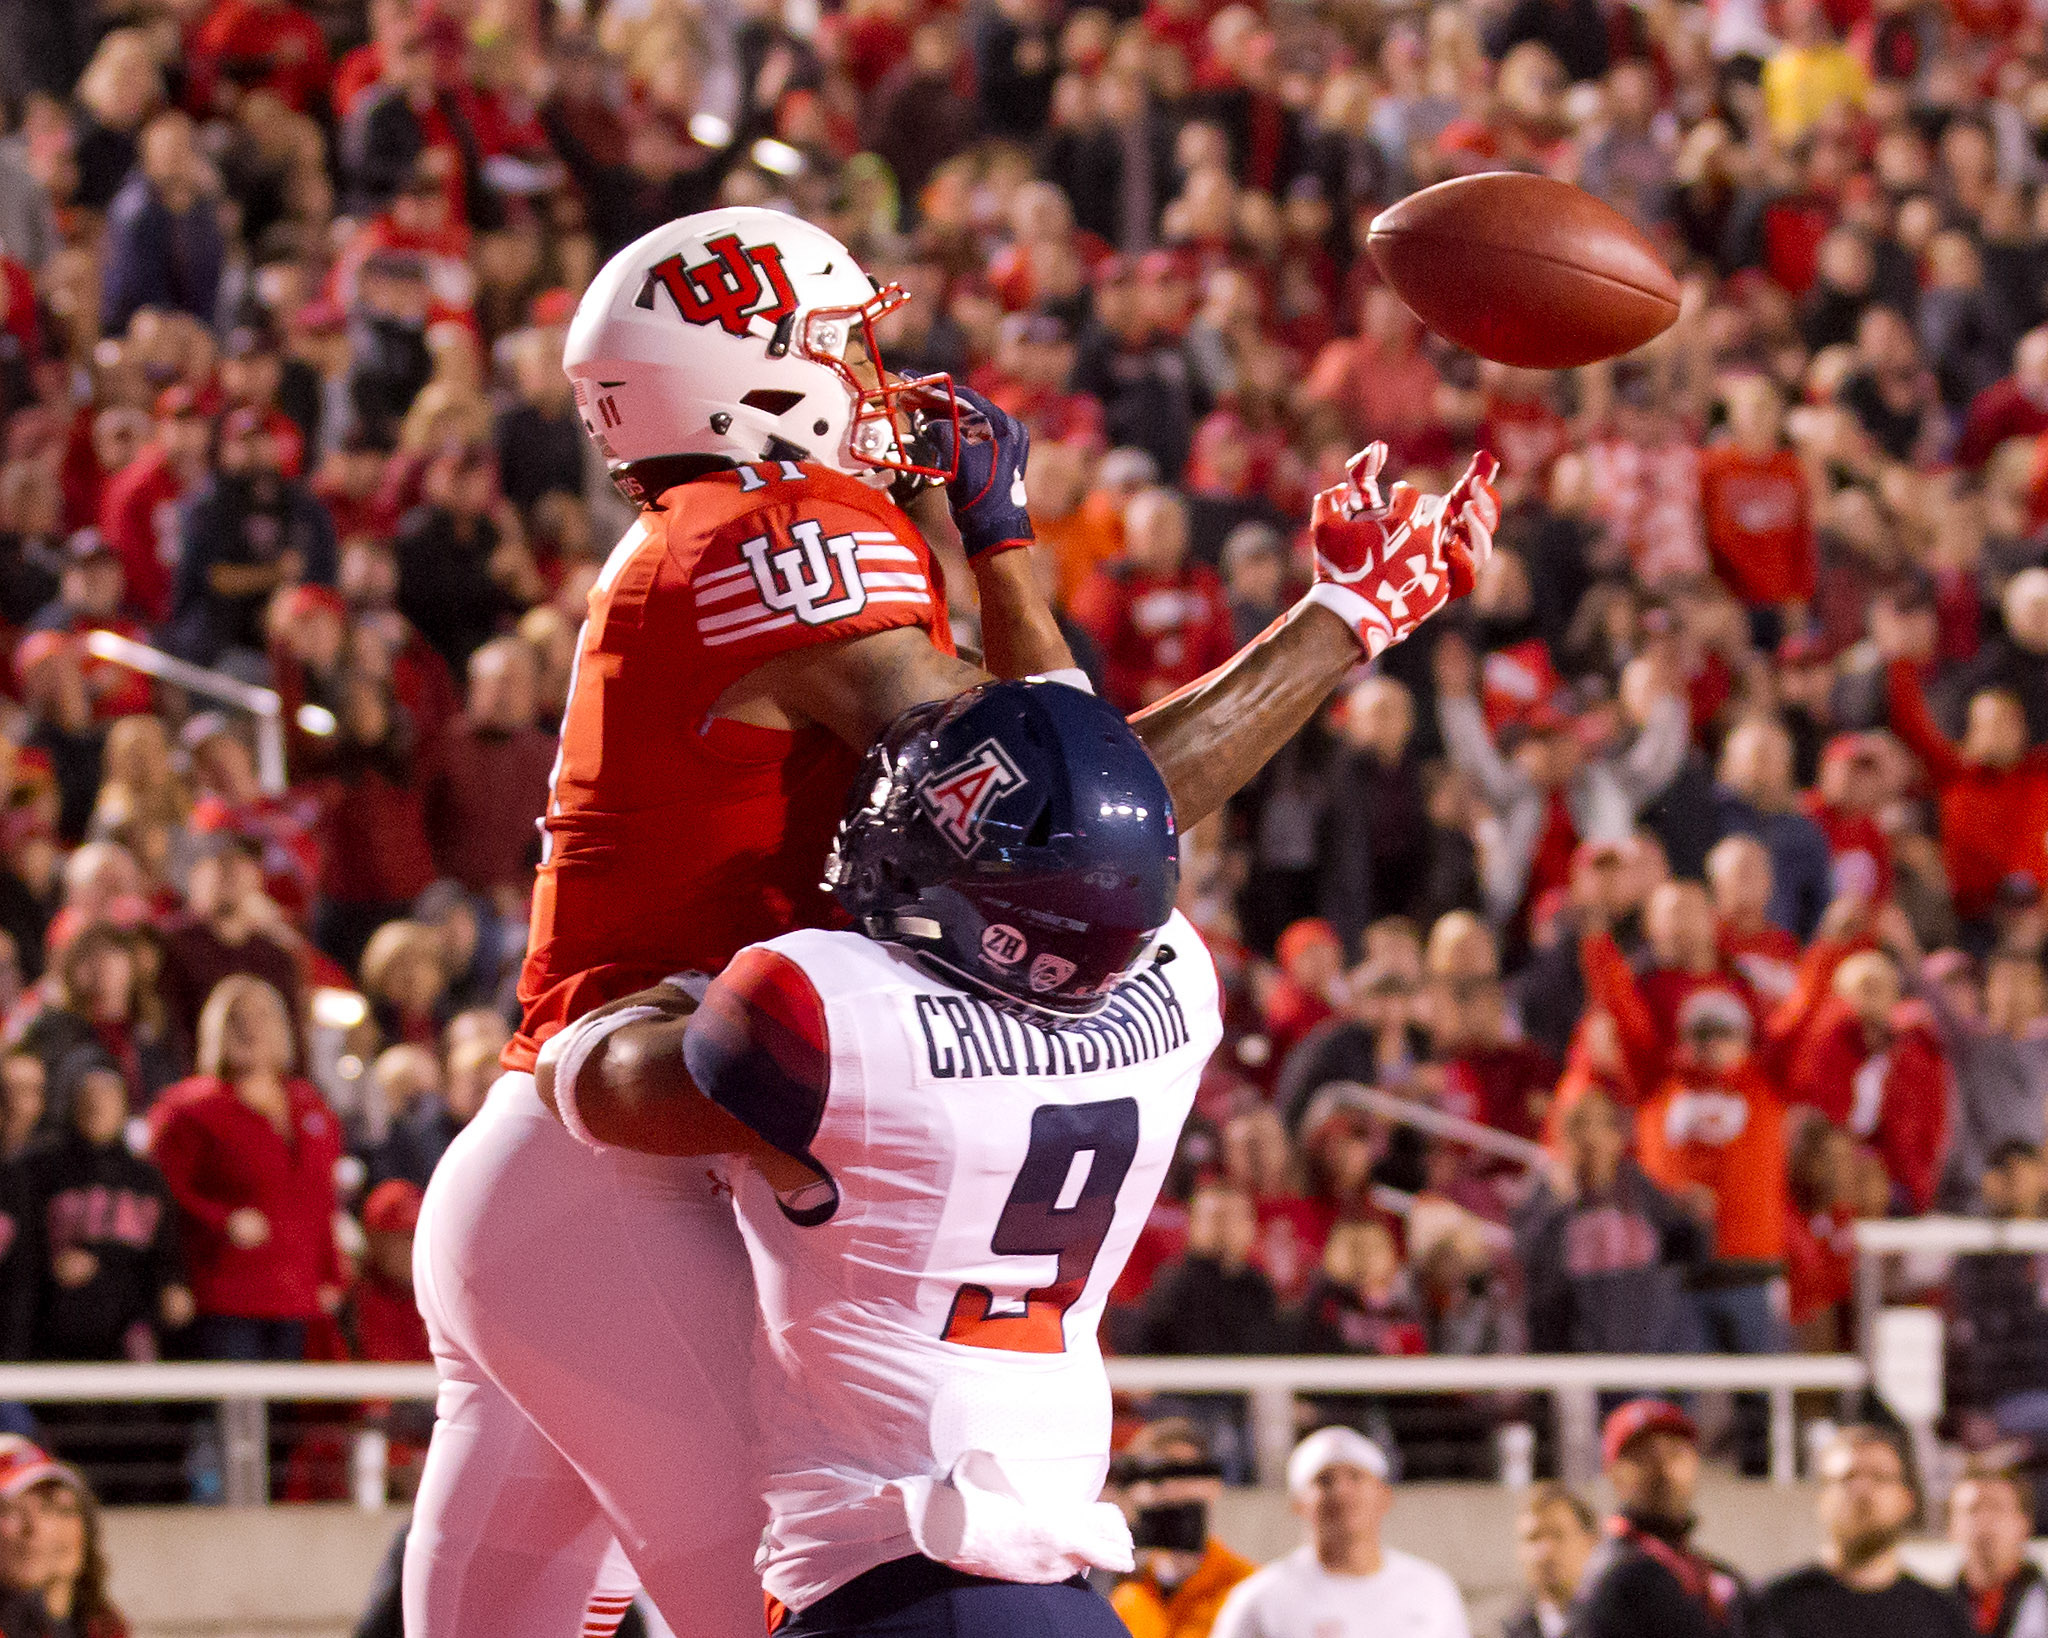 9601273-ncaa-football-arizona-at-utah